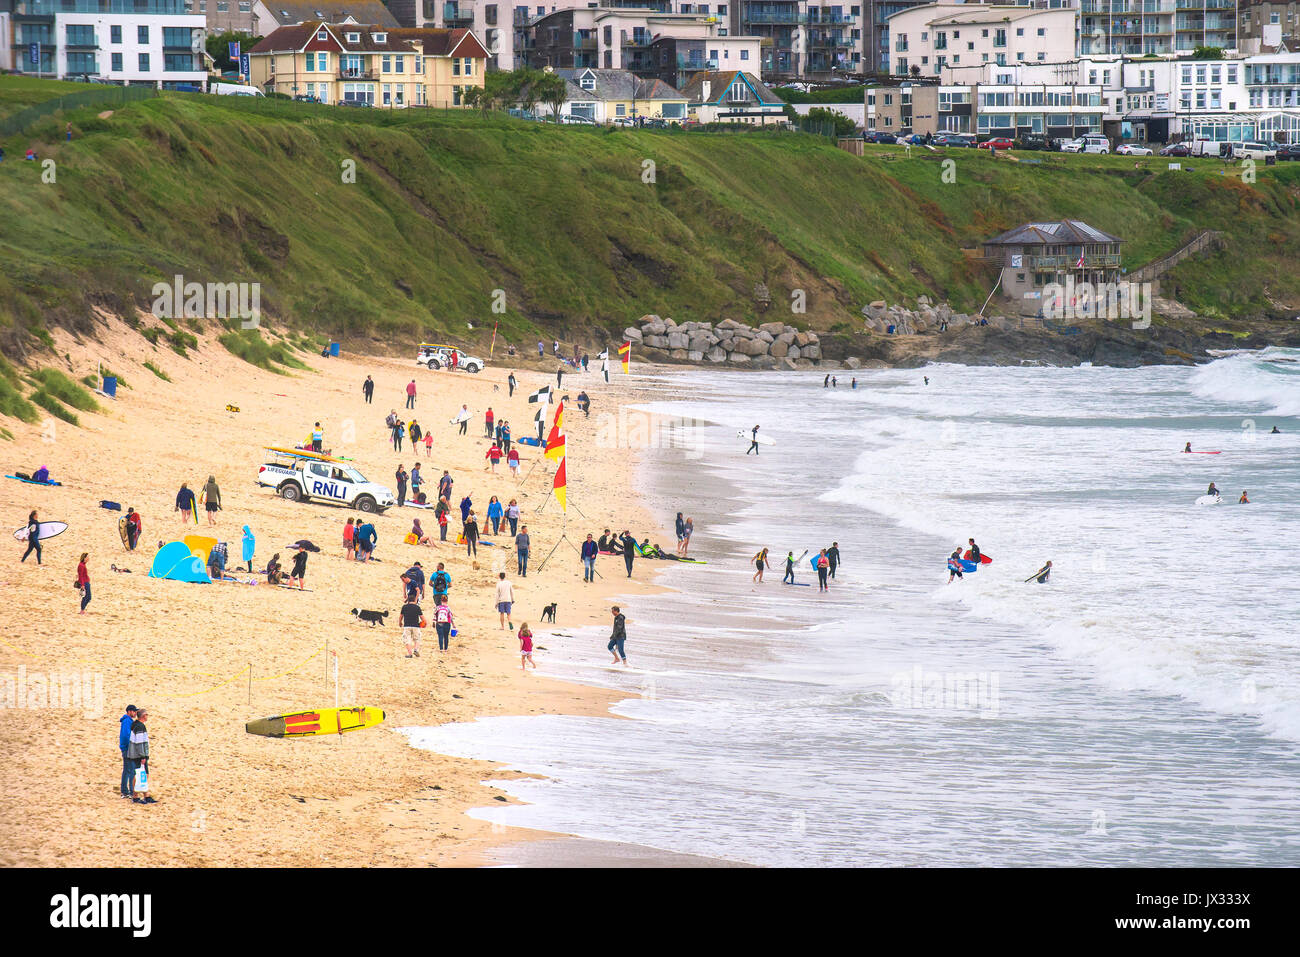 Holidaymakers enjoying themselves on Fistral Beach in Newquay, Cornwall. Stock Photo